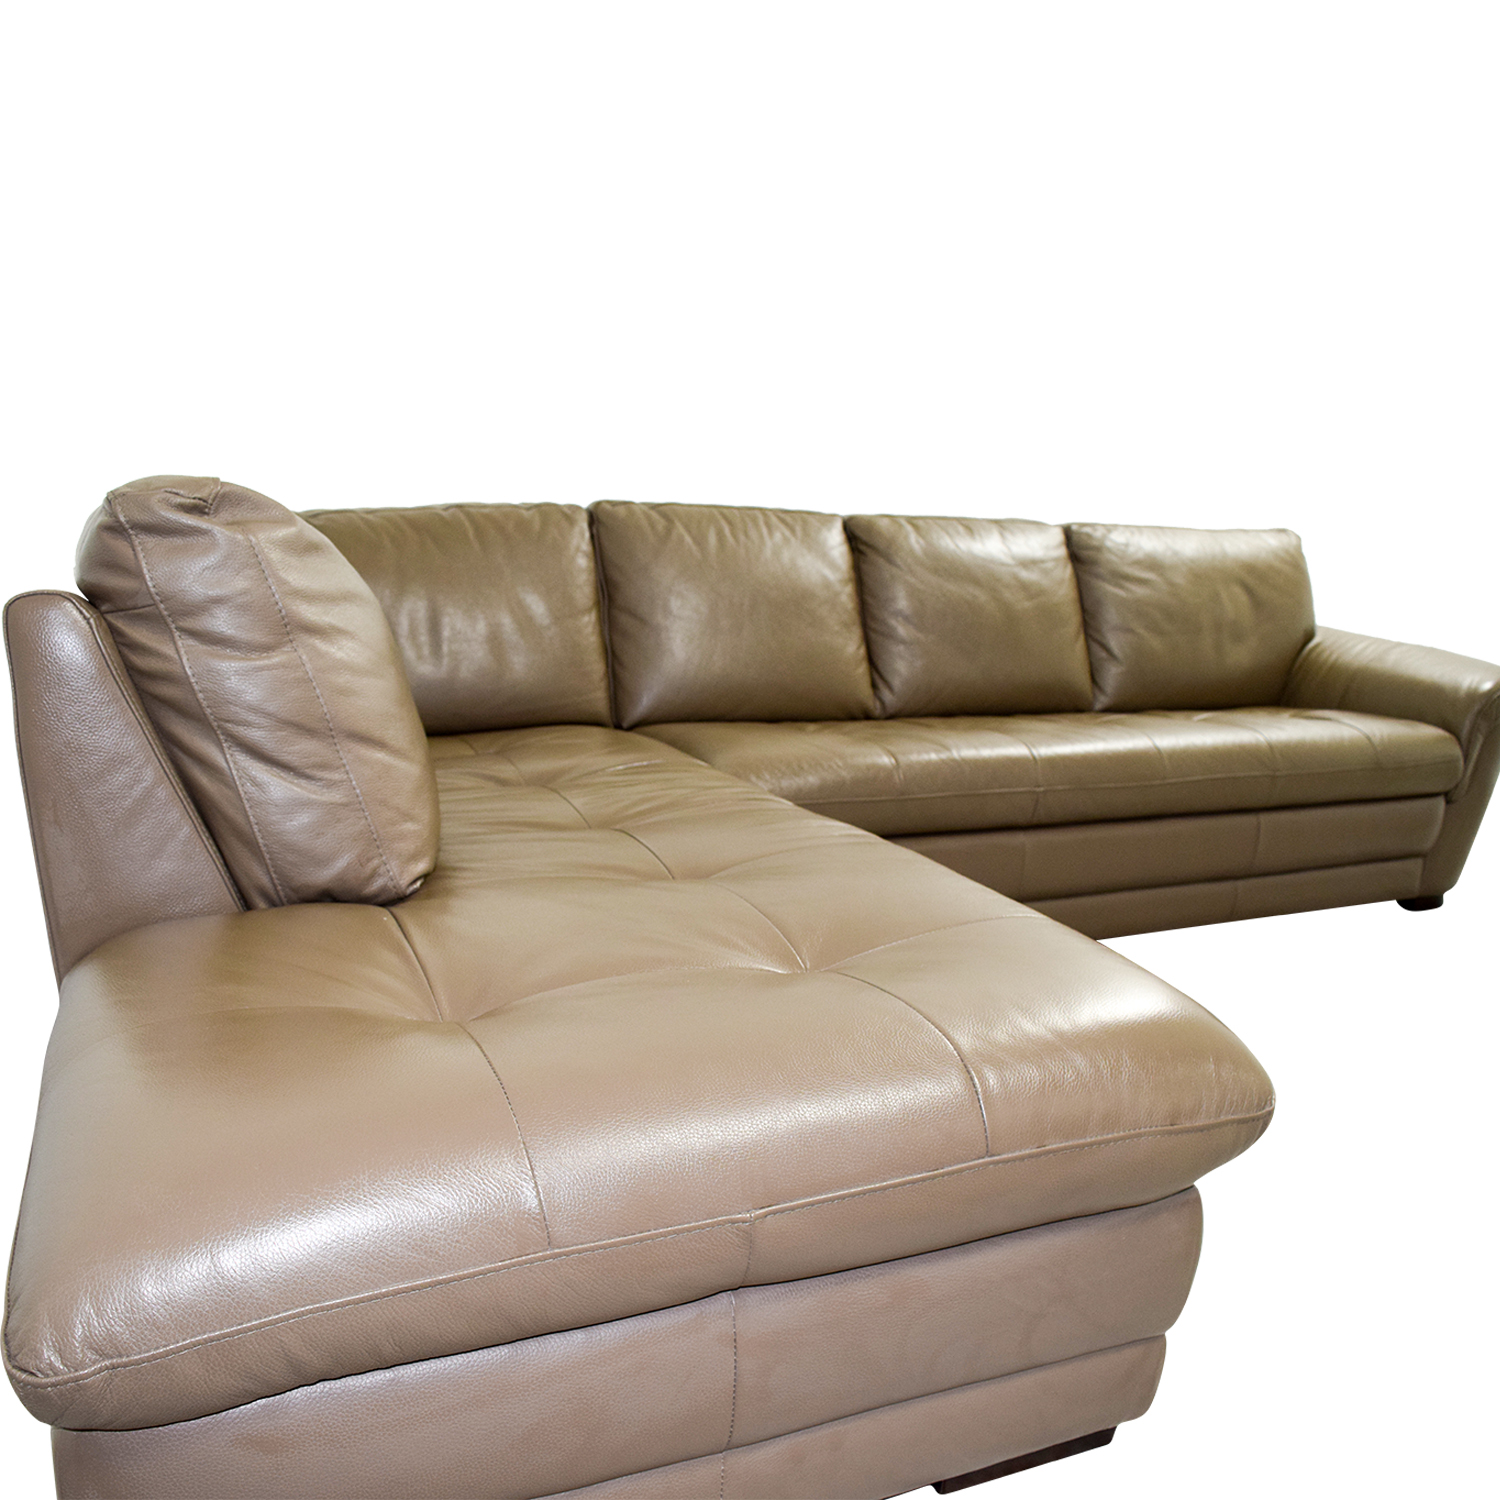 secondhand leather sofas do parker knoll make sofa beds 72% off - raymour & flanigan garrison ...